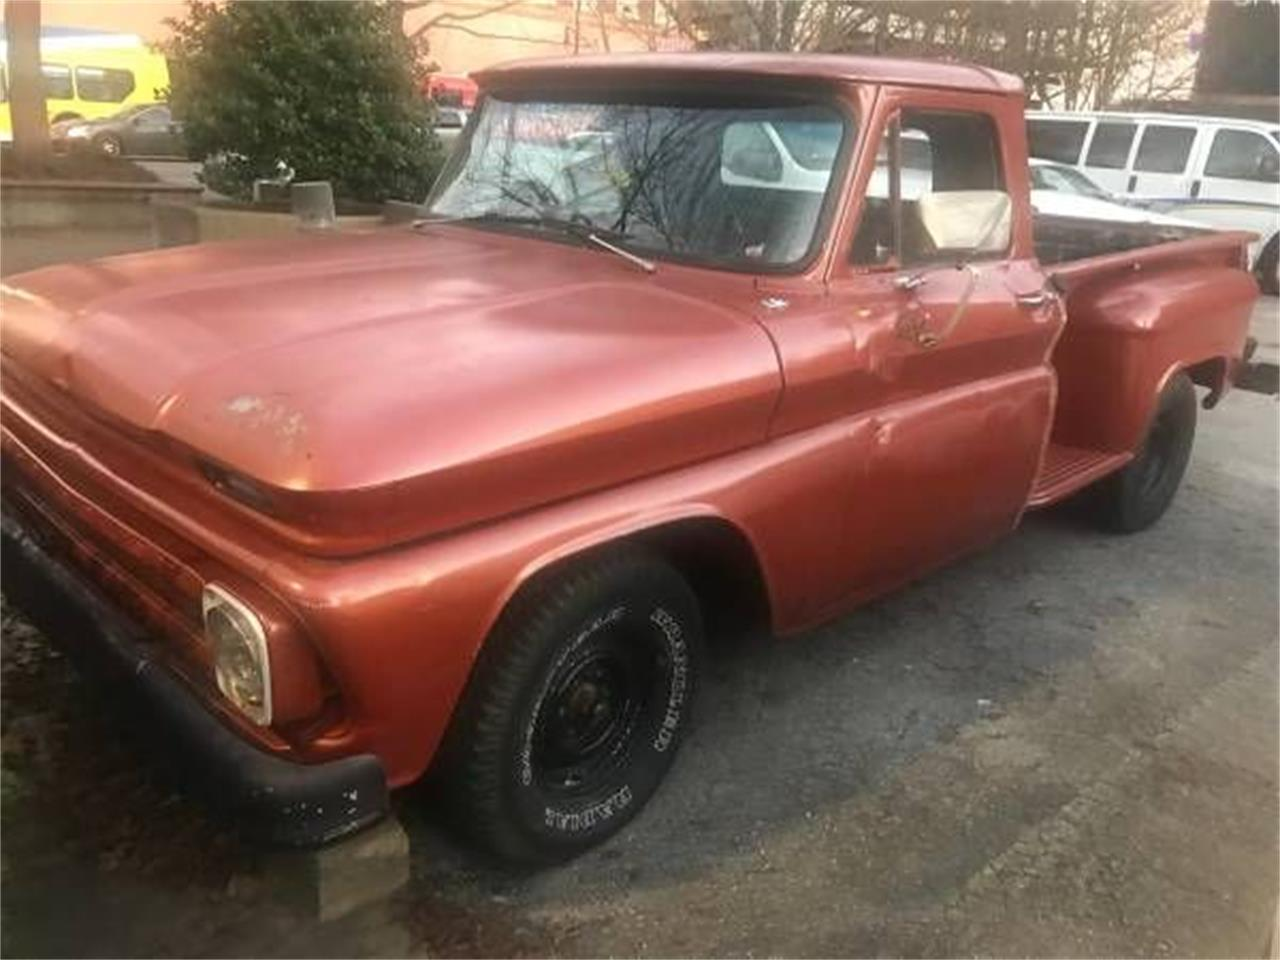 For Sale: 1965 GMC Pickup in Cadillac, Michigan